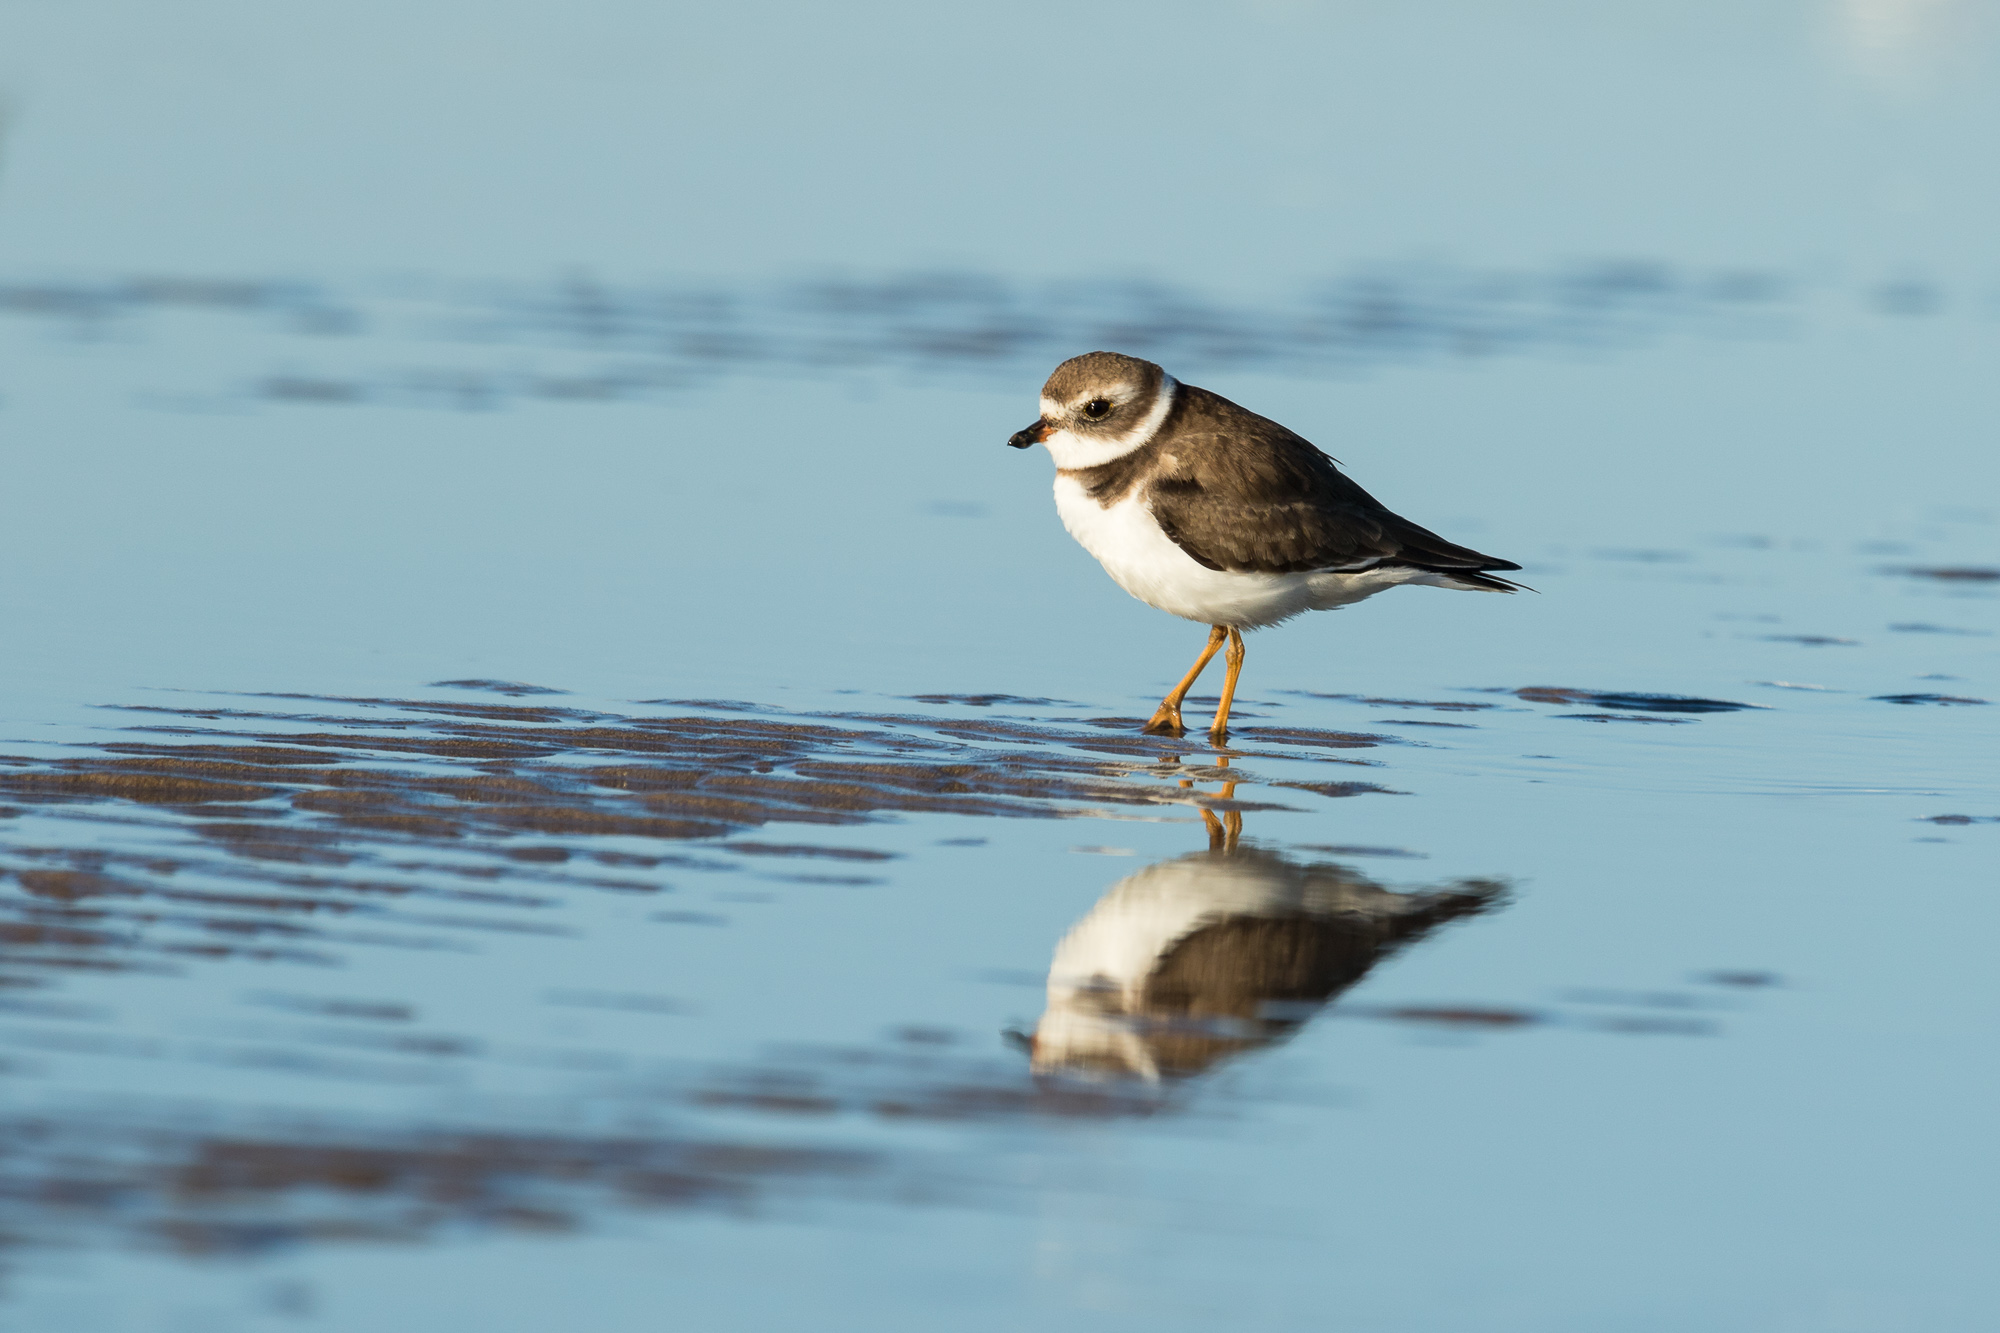 A semipalmated plover stands on small bits of exposed sand, Puerto Vallarta, Mexico